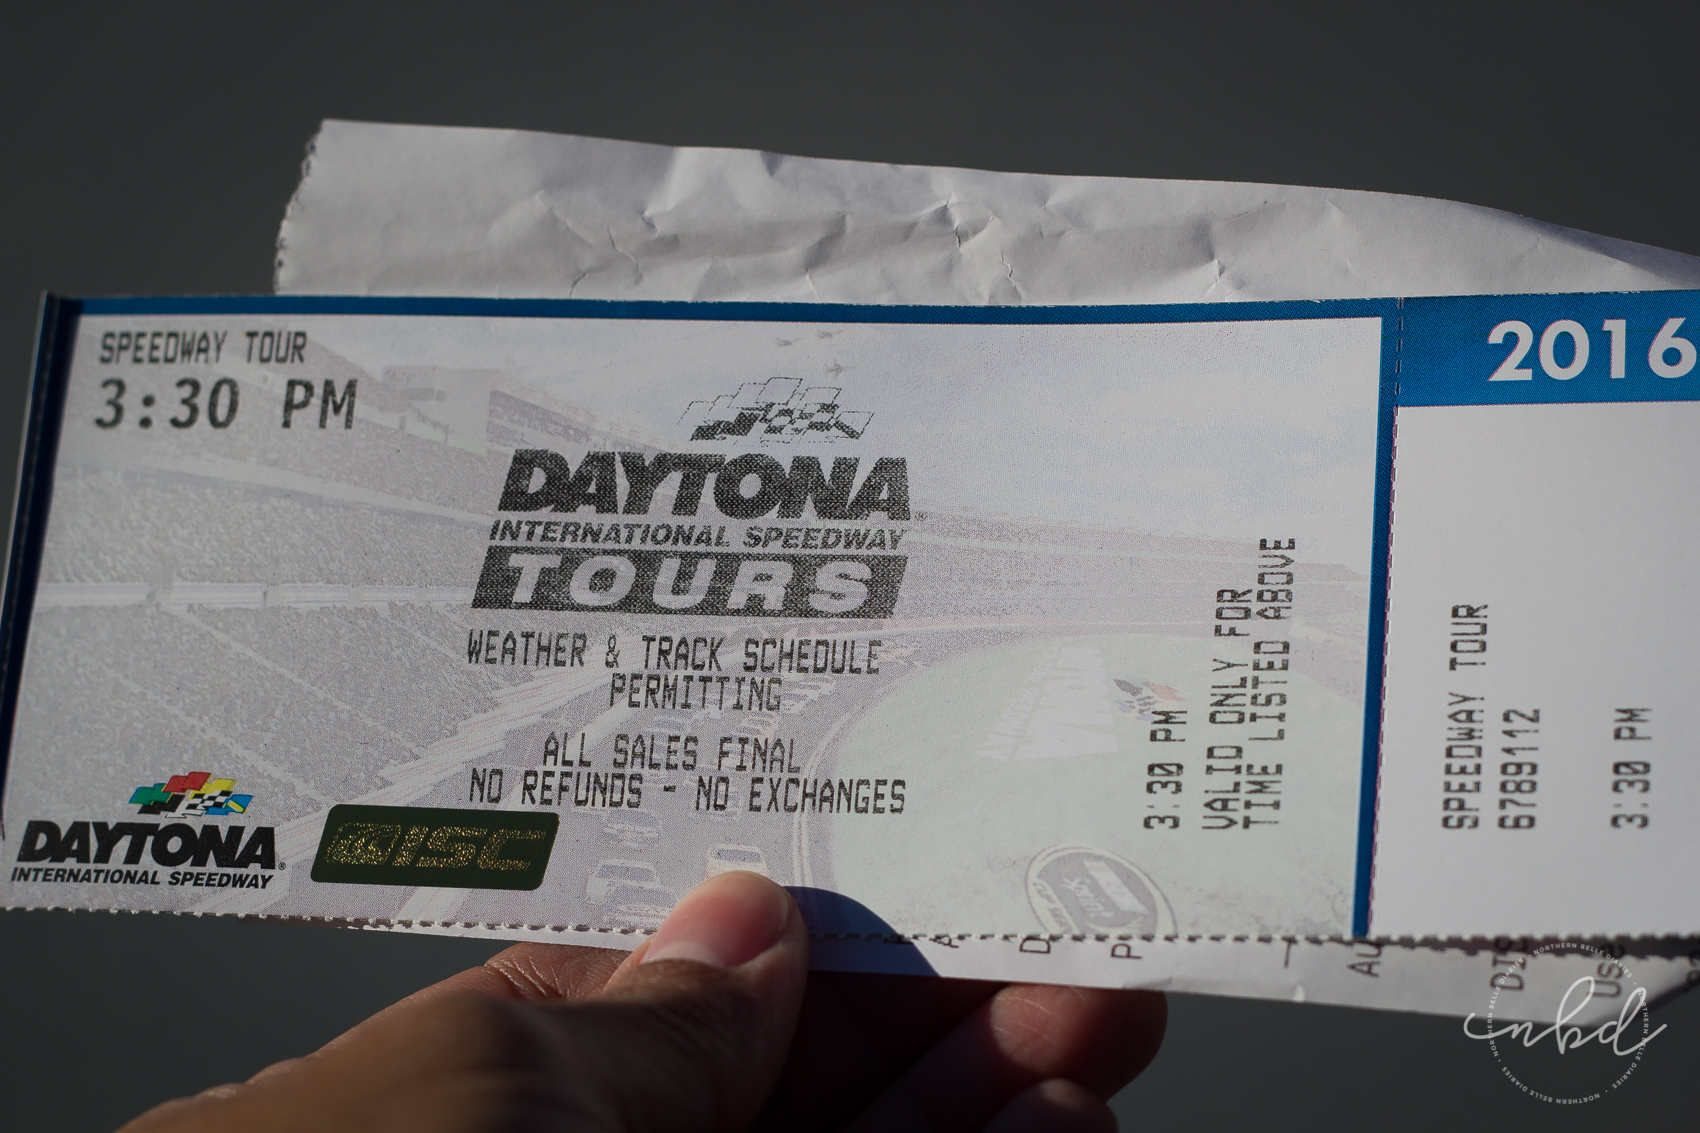 Daytona International Speedway tram tour ticket - Daytona Beach